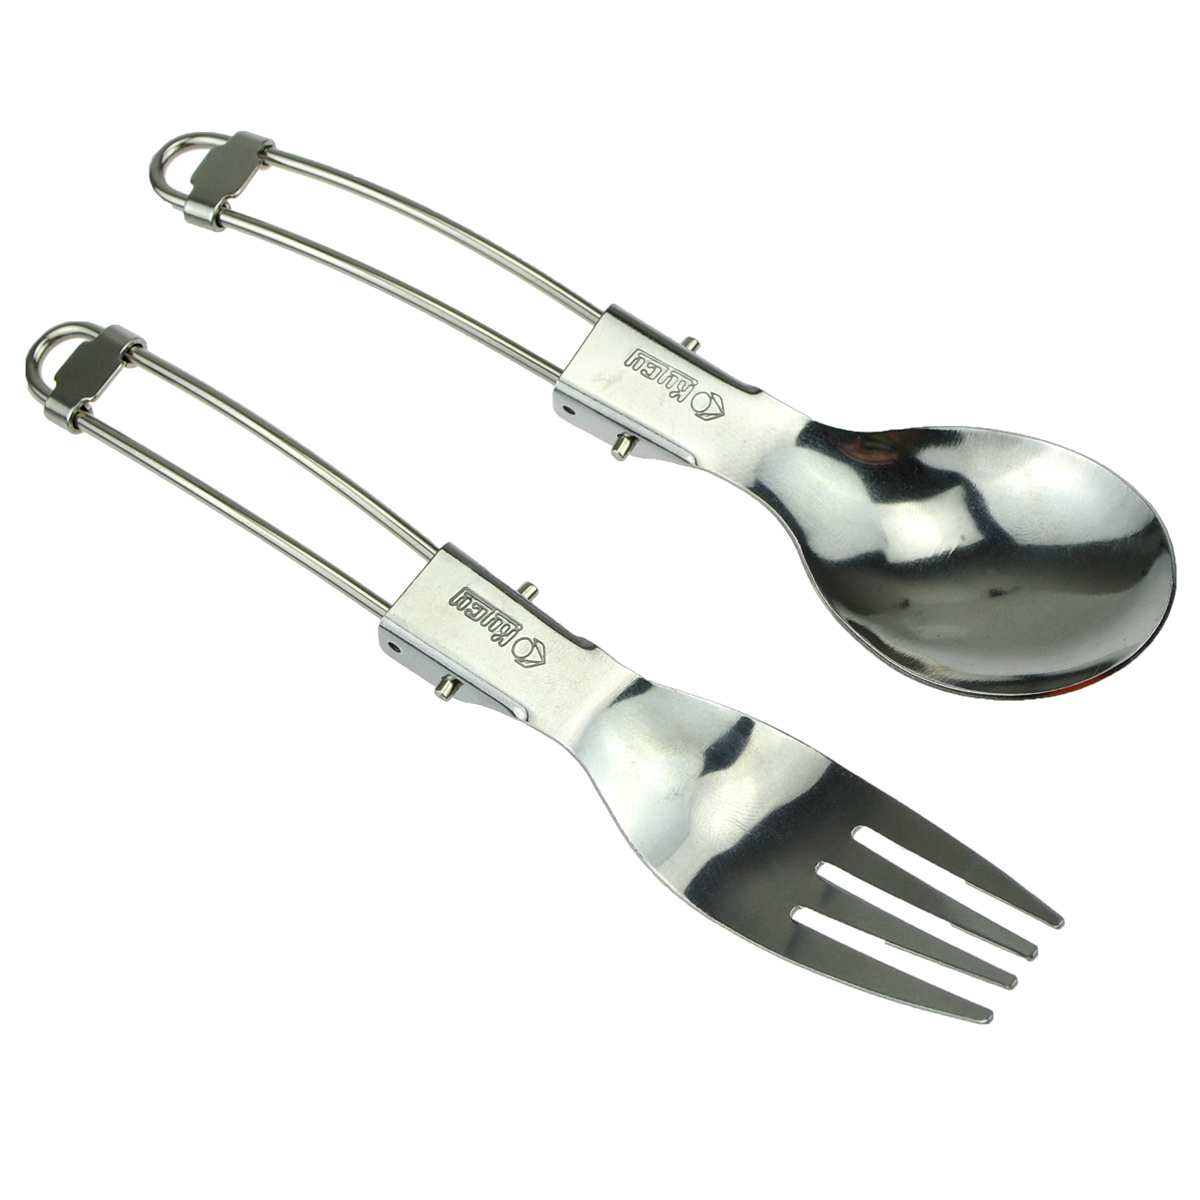 Stainless Steel Foldable Spoon Fork Set for Outdoor Camping Hiking Picnic